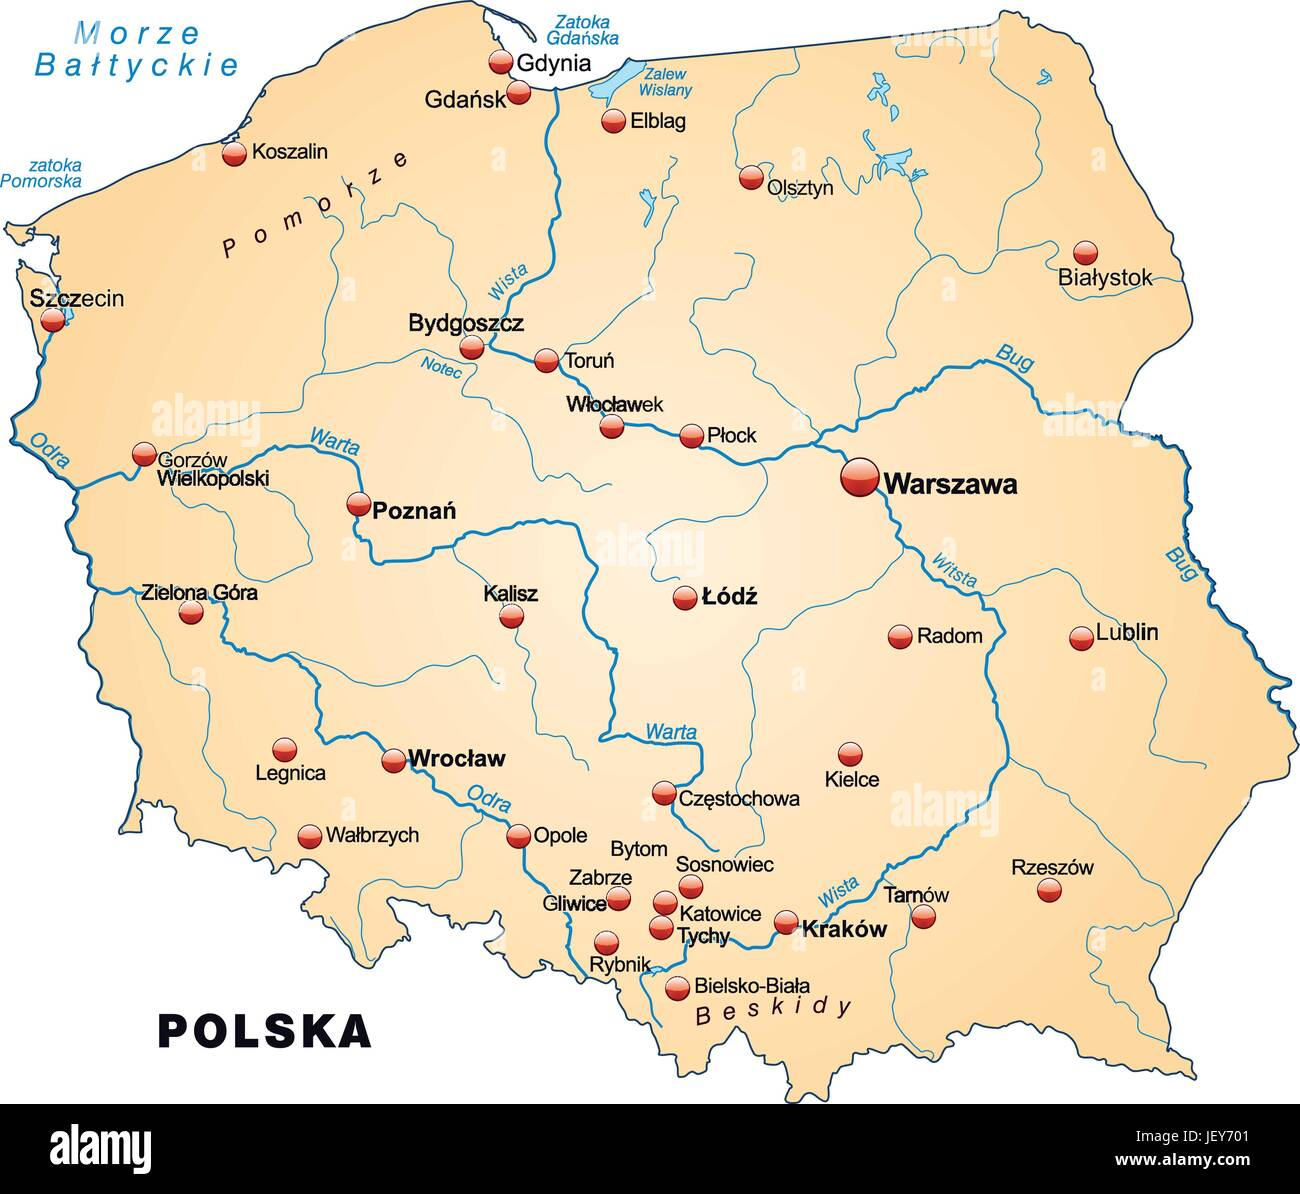 Poland Card Outline Borders Atlas Map Of The World Map Stock